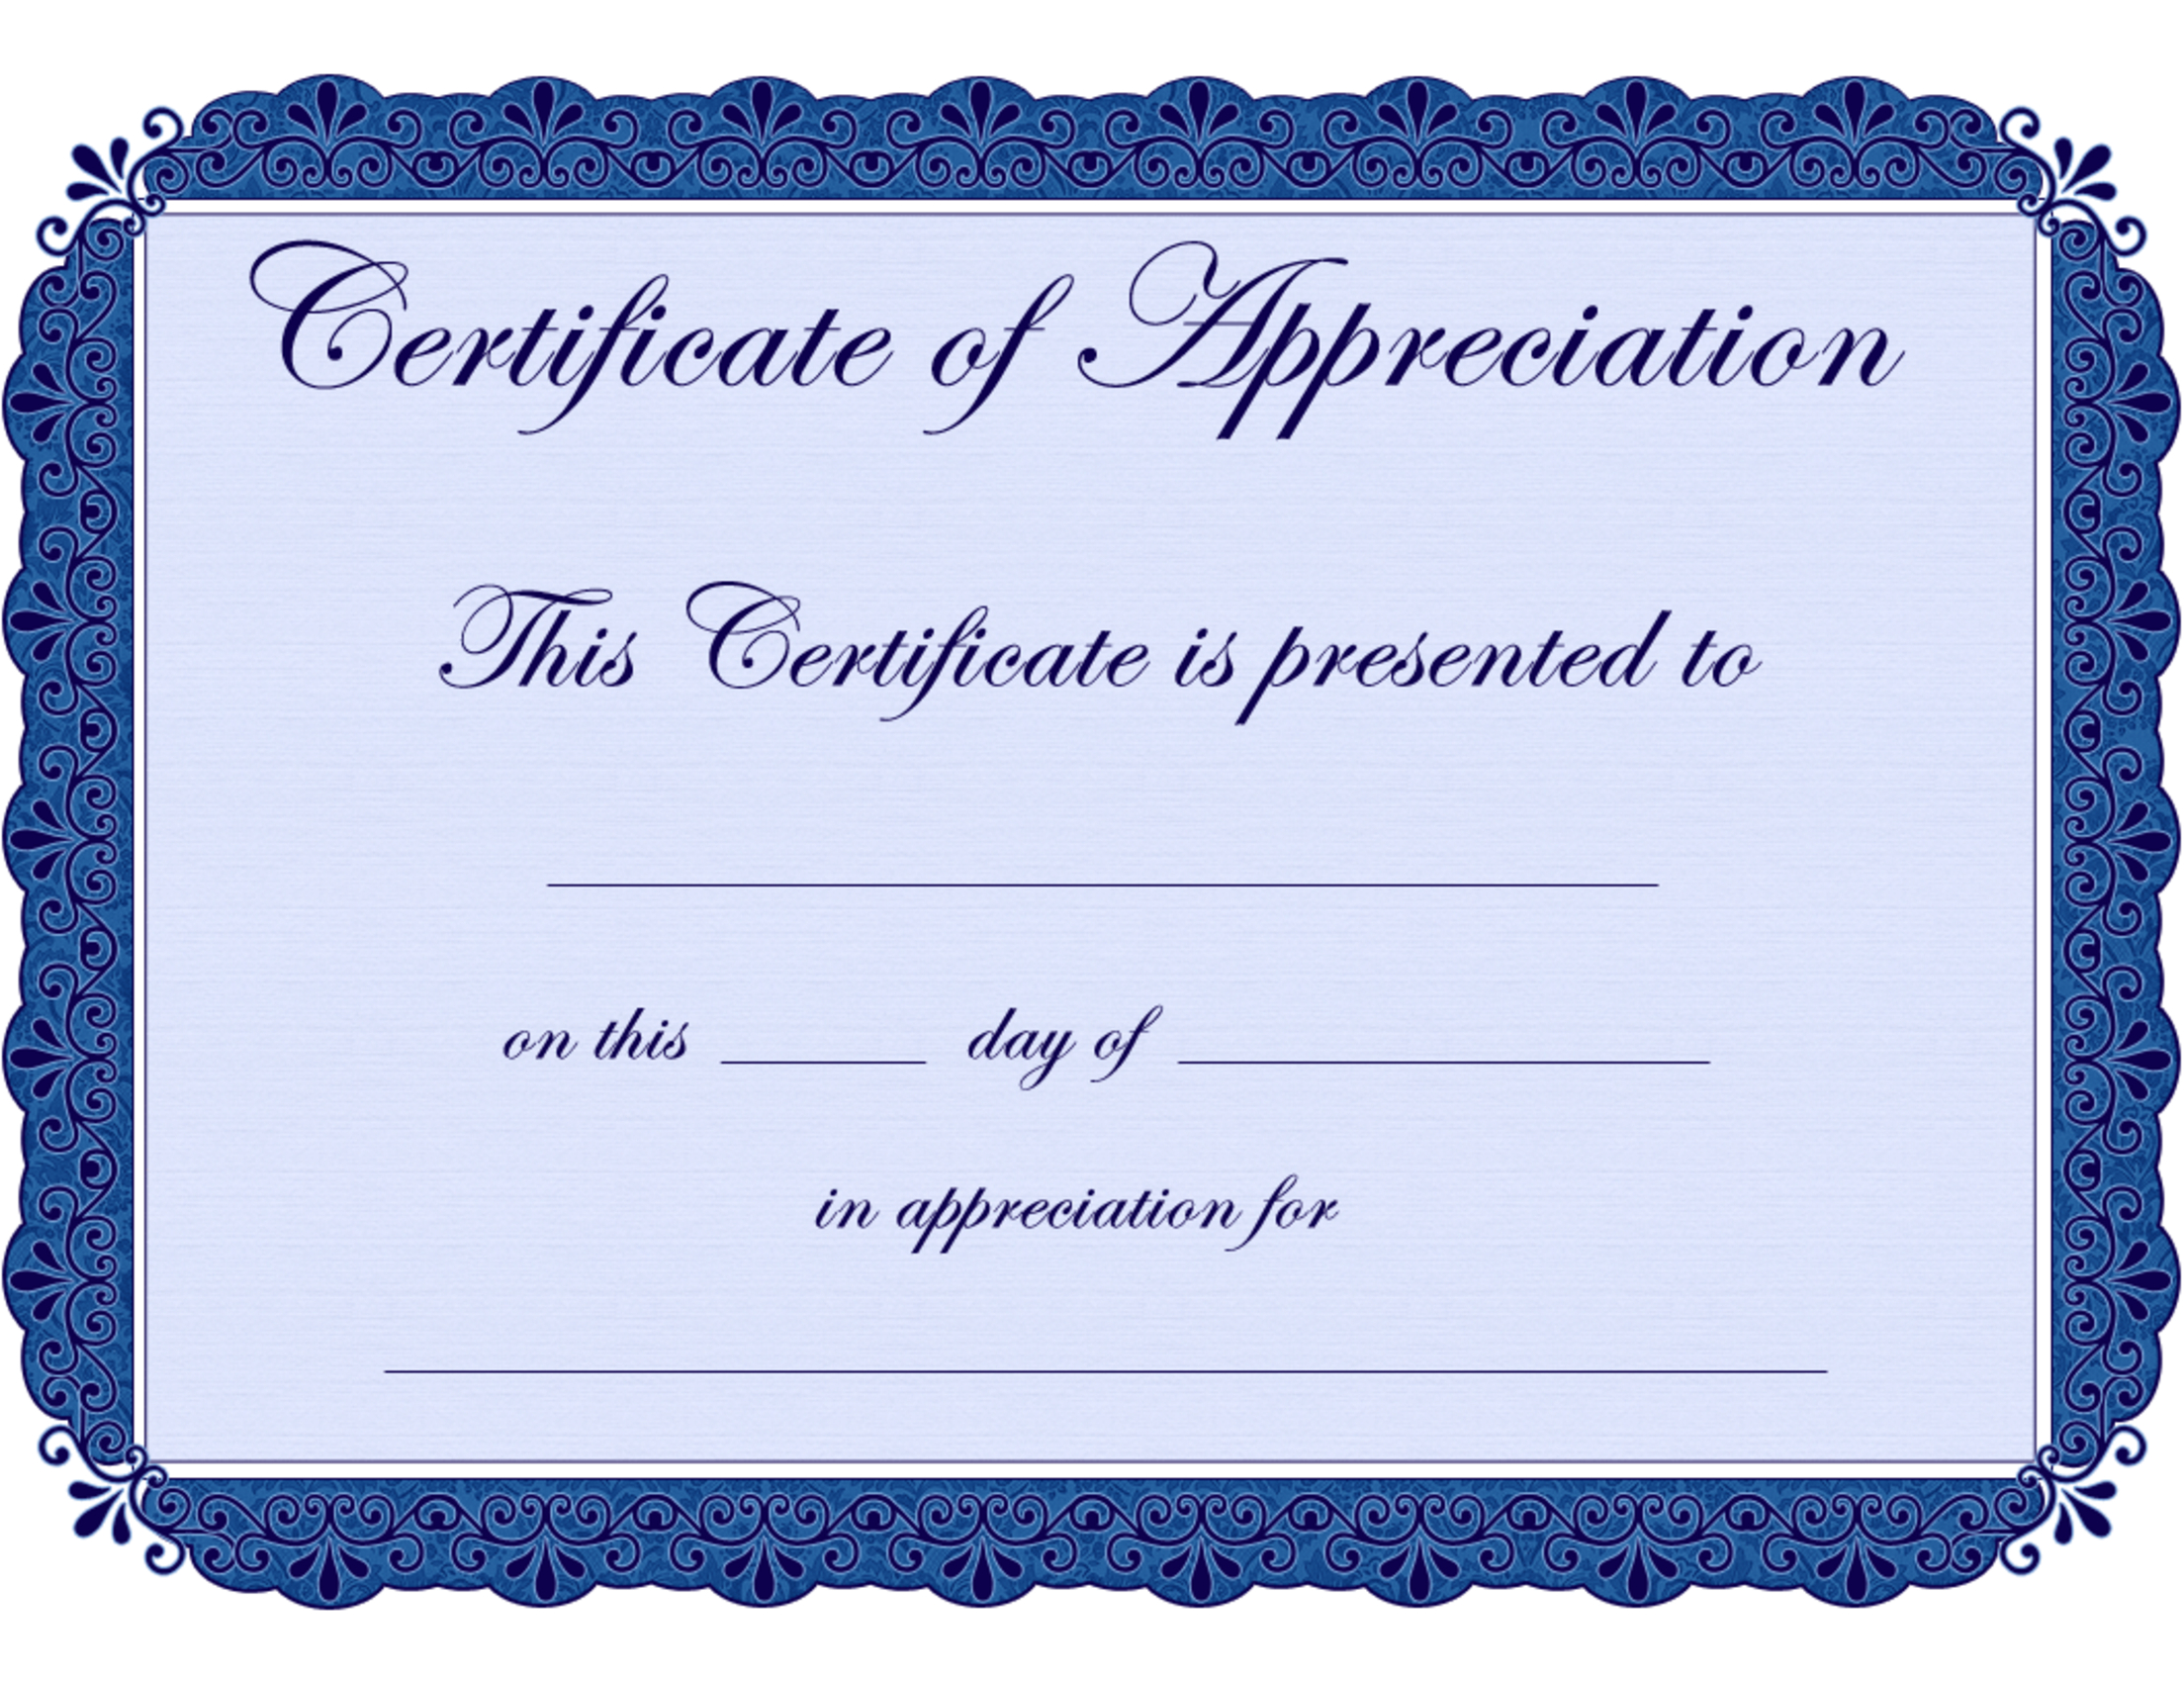 Free Printable Certificates Certificate Of Appreciation Certificate - Free Printable Blank Certificate Templates